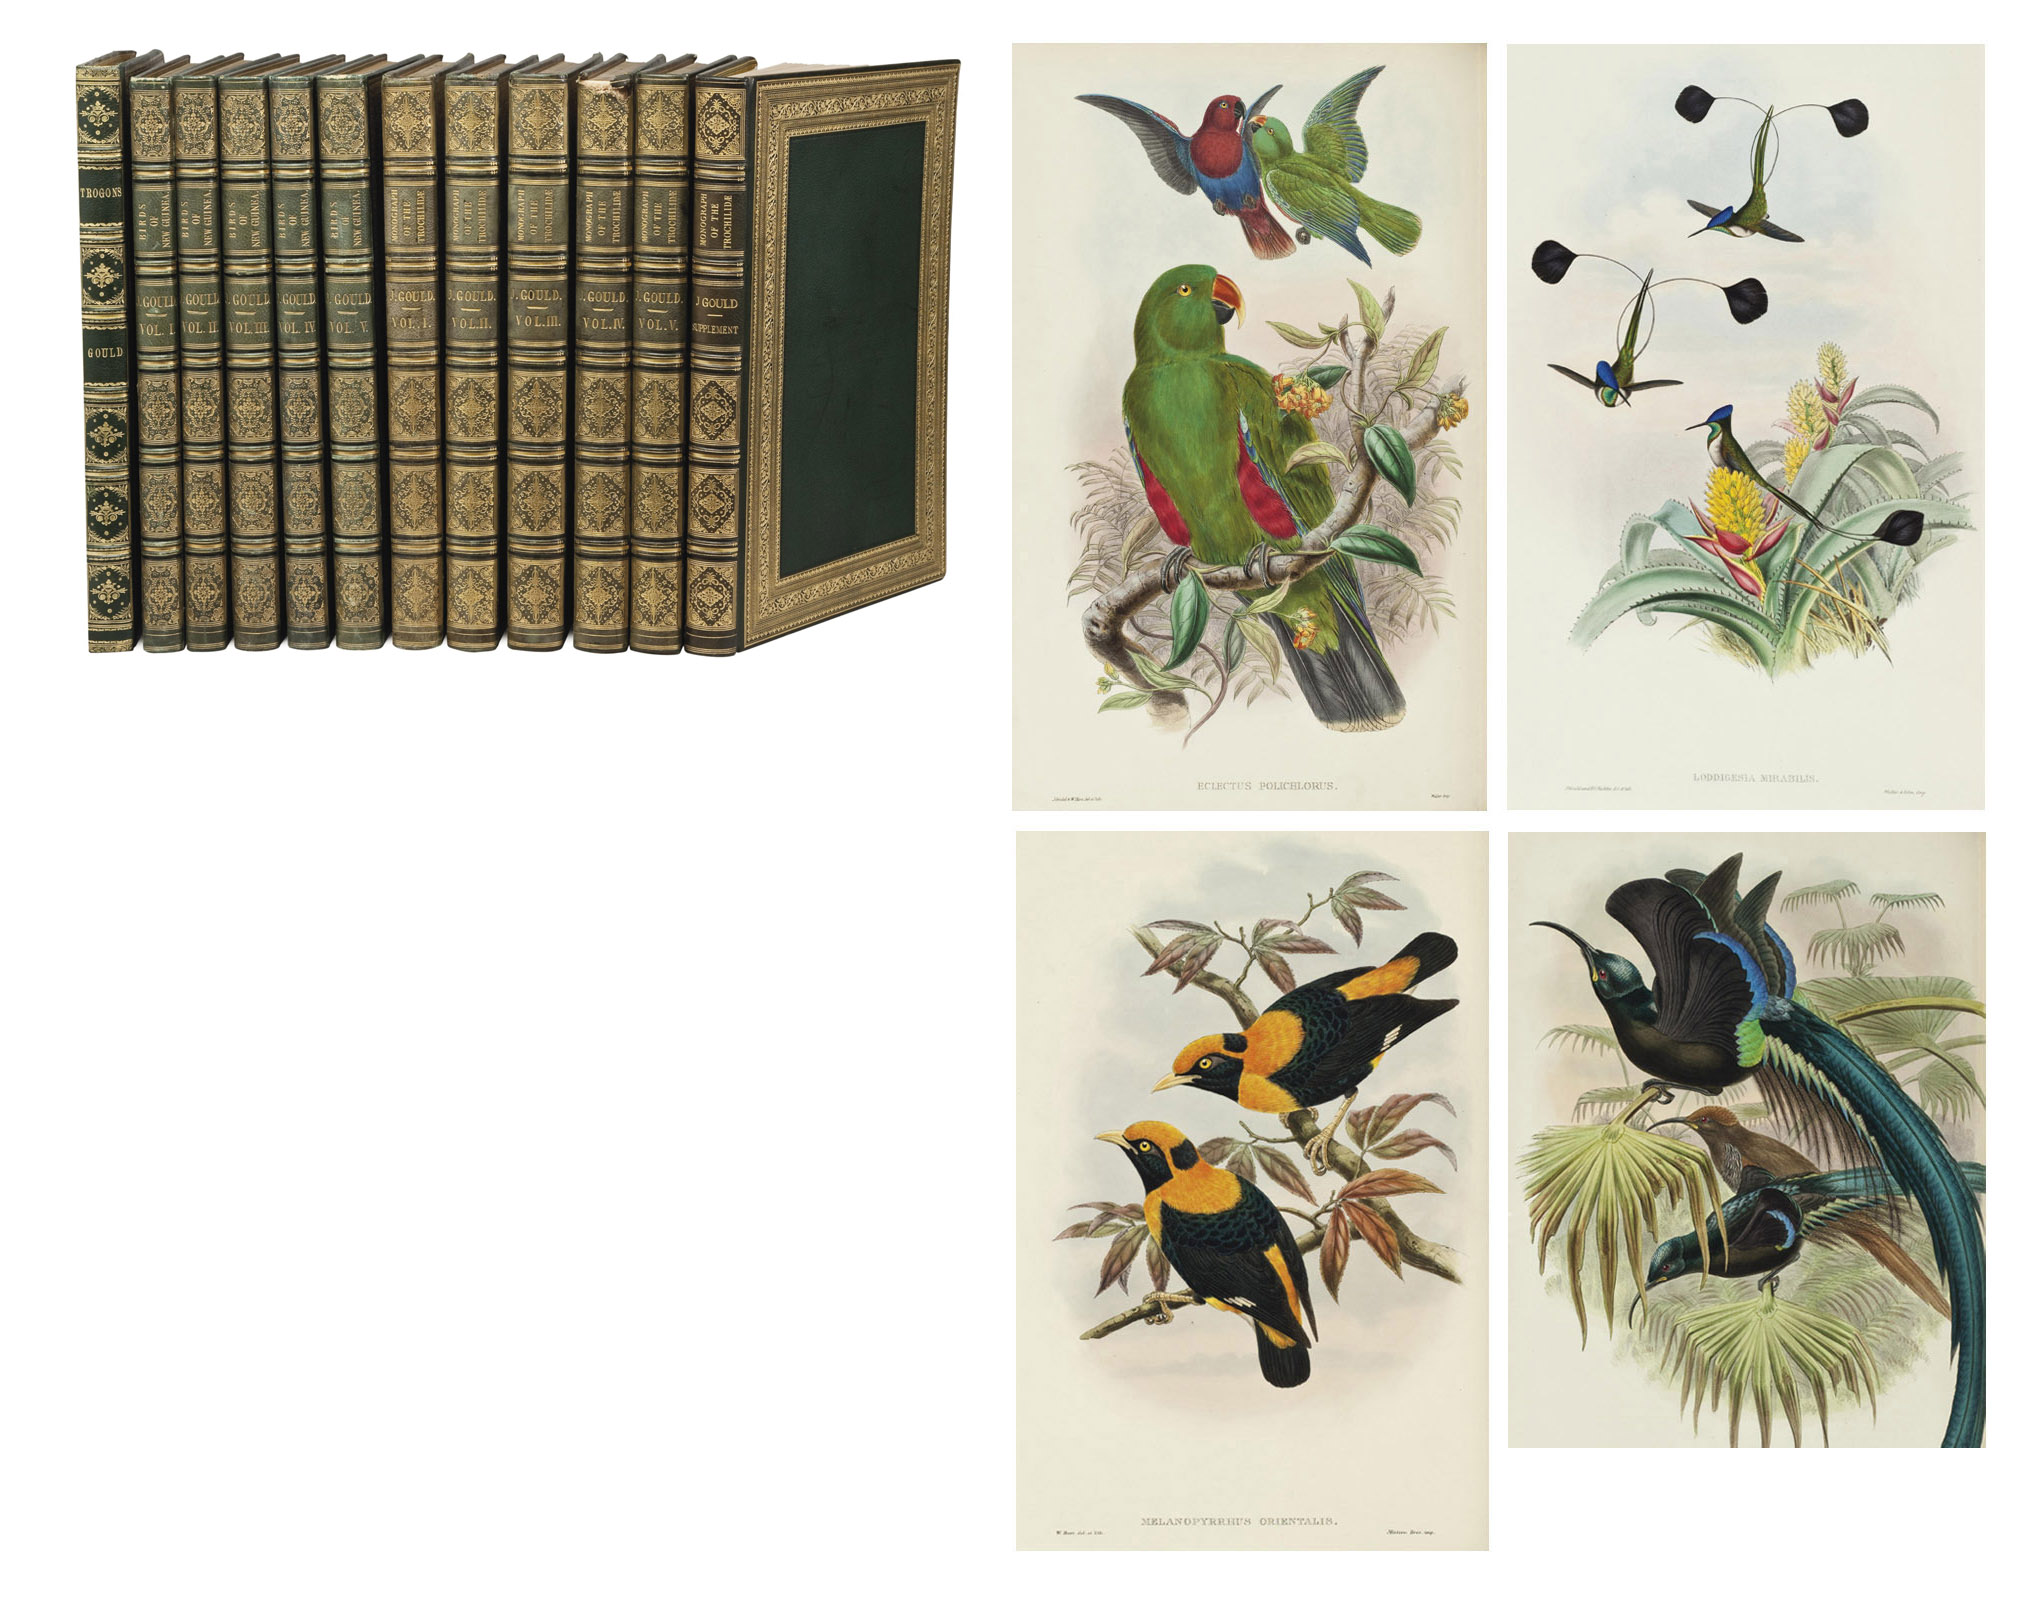 GOULD, John (1804-1881) & Richard Bowdler SHARPE (1847-1909). The Birds of New Guinea and the Adjacent Papuan Islands, Including Many New Species Discovered in Australia. Londres: Taylor & Francis pour Henry Sotheran & Co., 1875-1888.